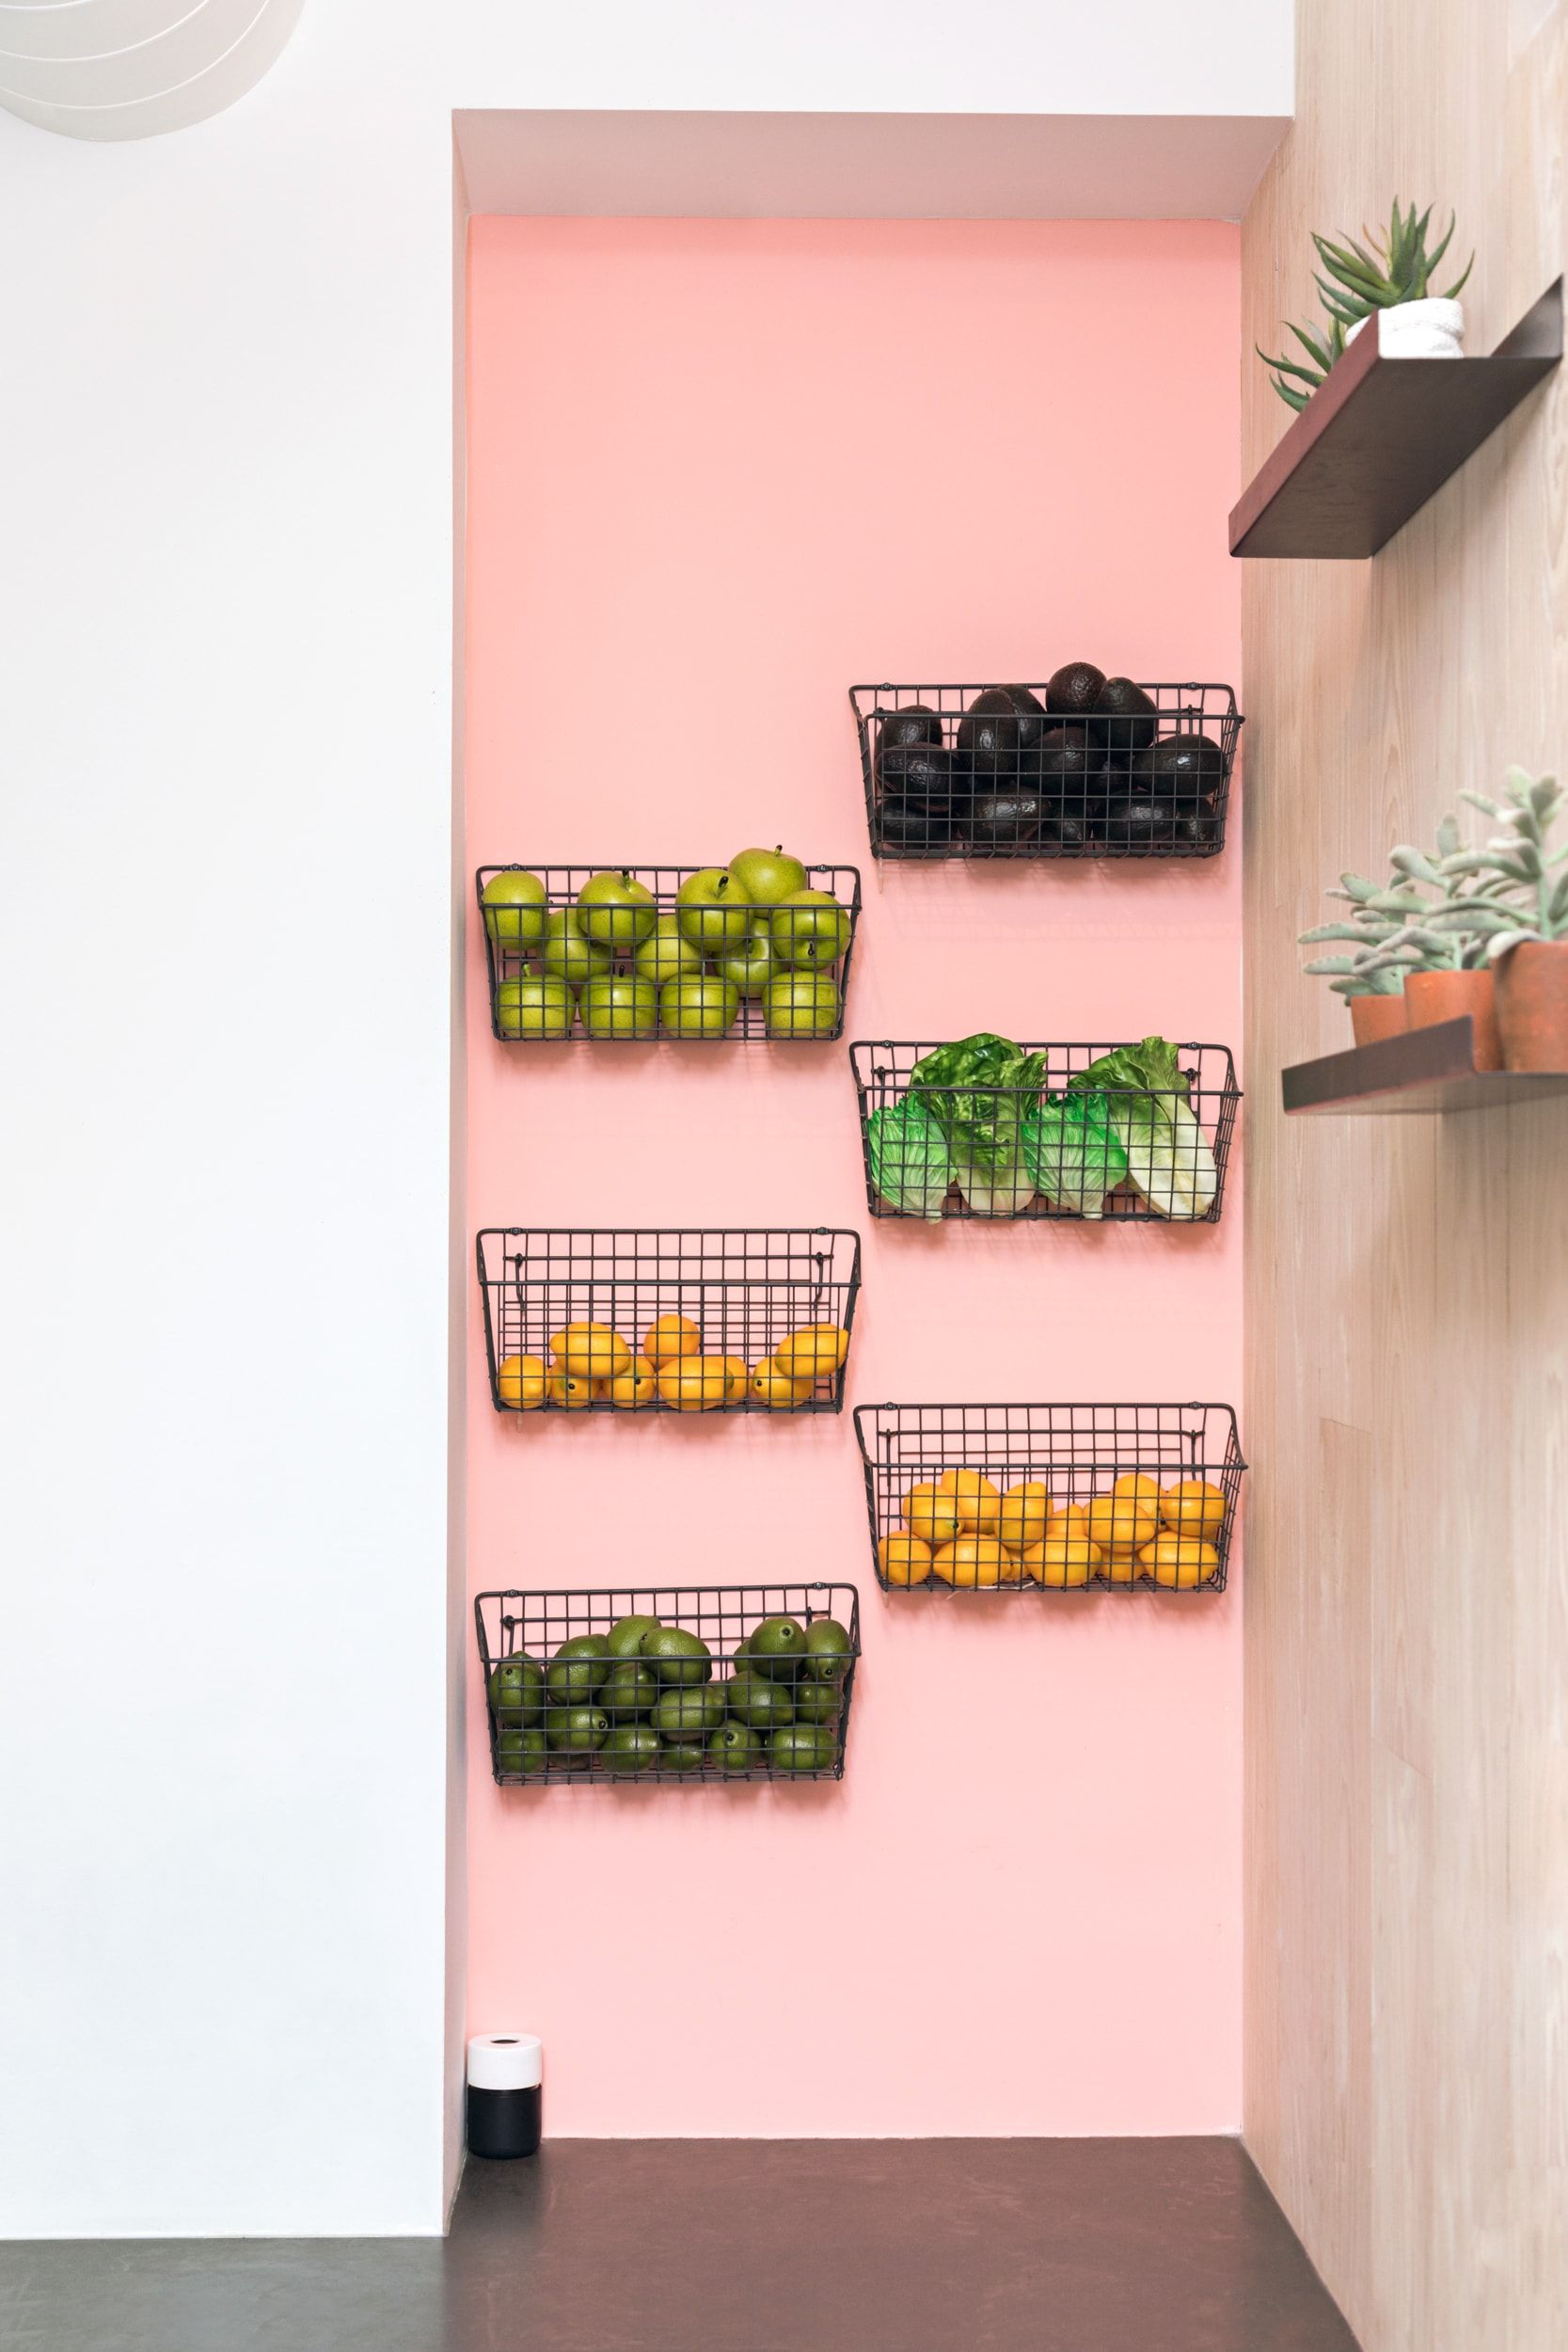 Food Storage Ideas That Will Make Your Kitchen Look Even Nicer #storagesolutions